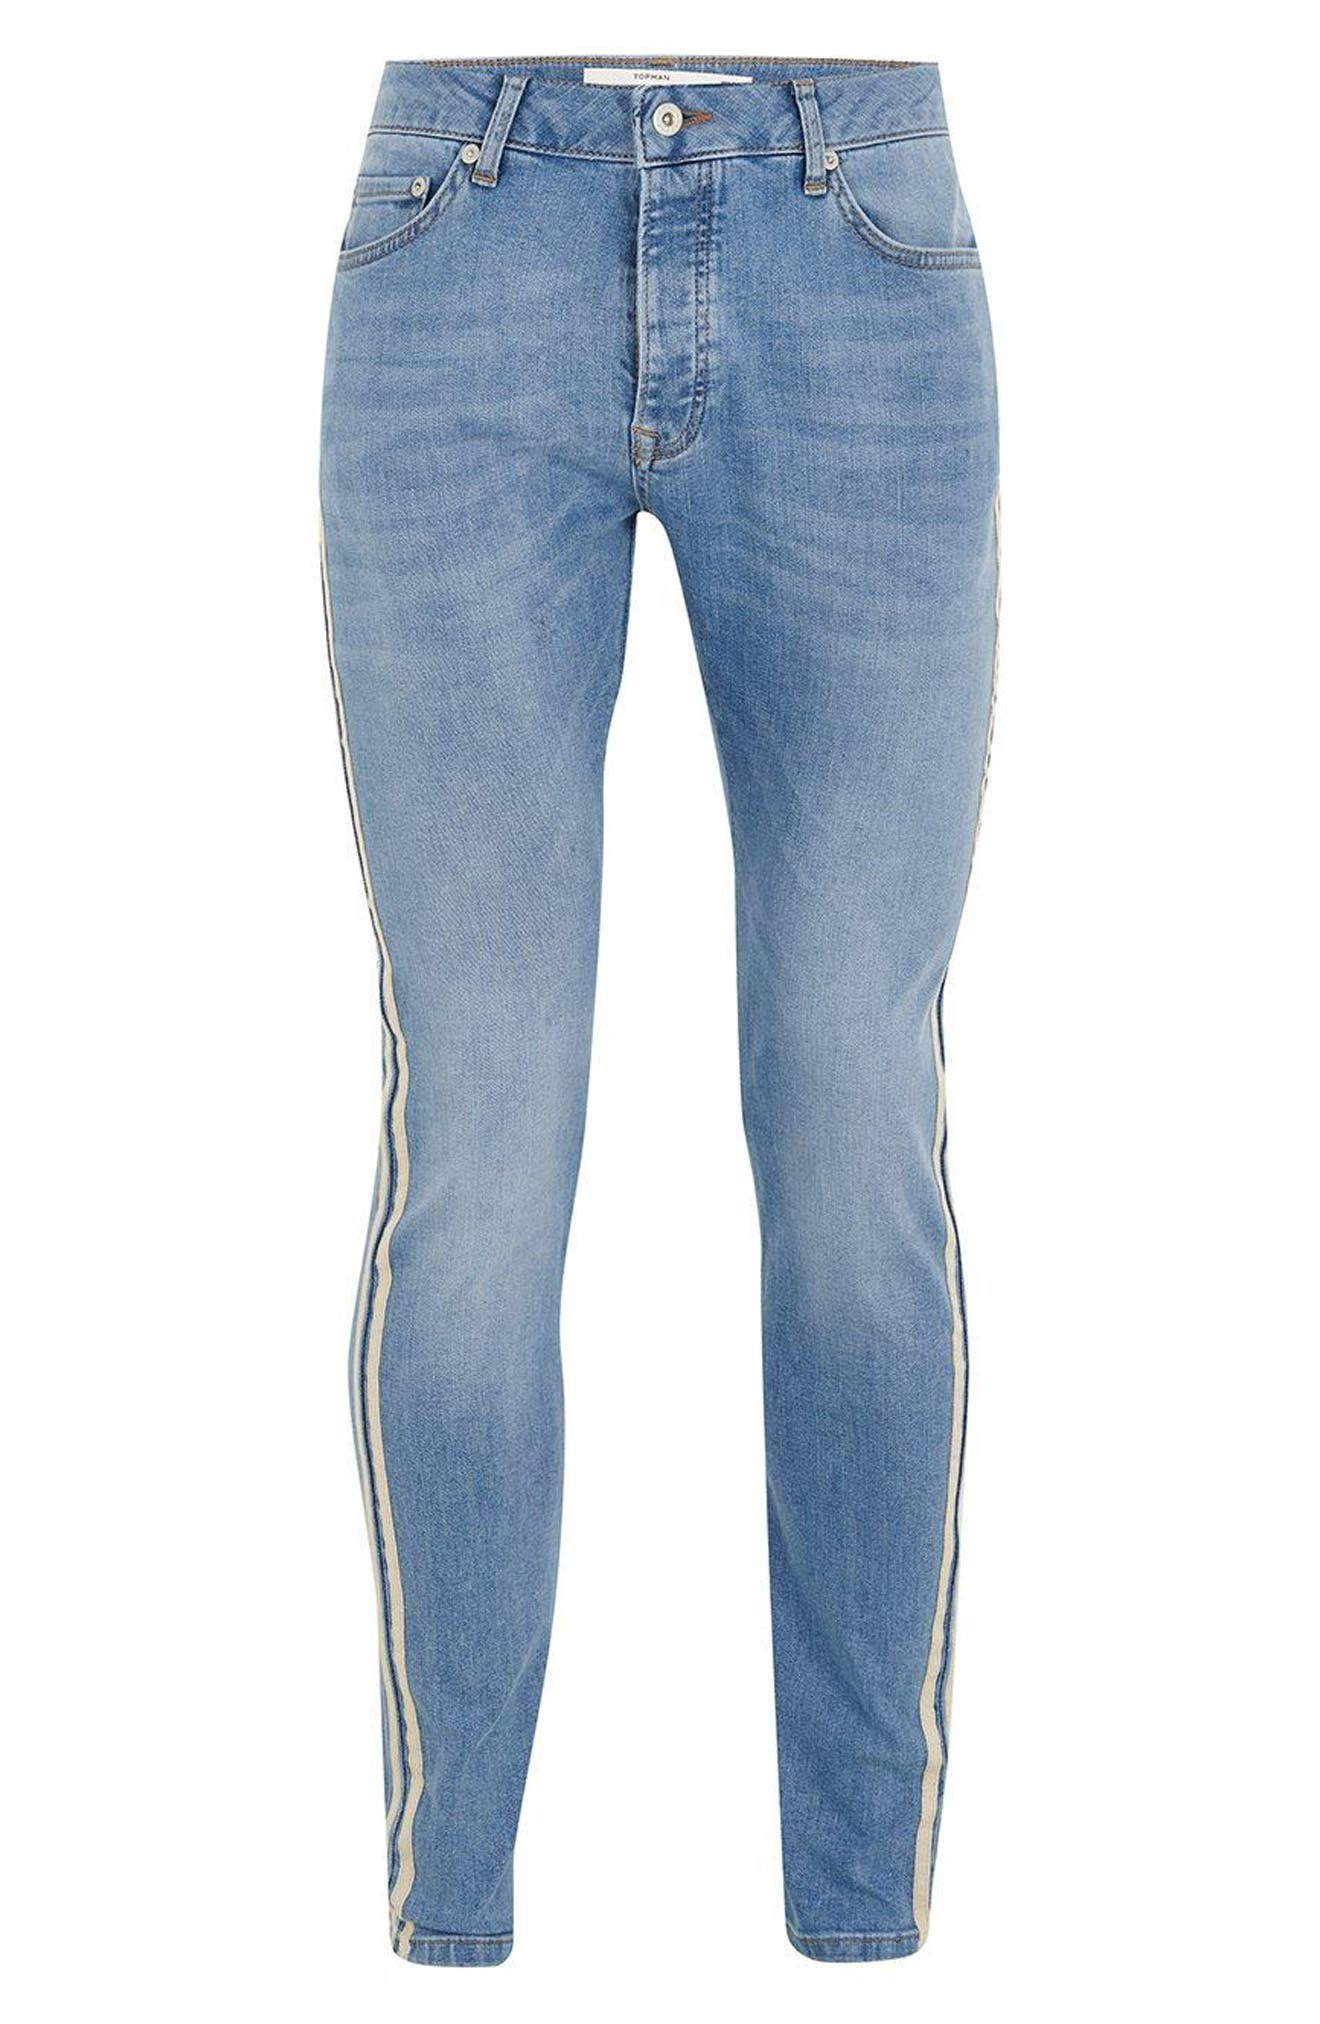 Tape Stretch Skinny Fit Jeans,                             Alternate thumbnail 5, color,                             BLUE